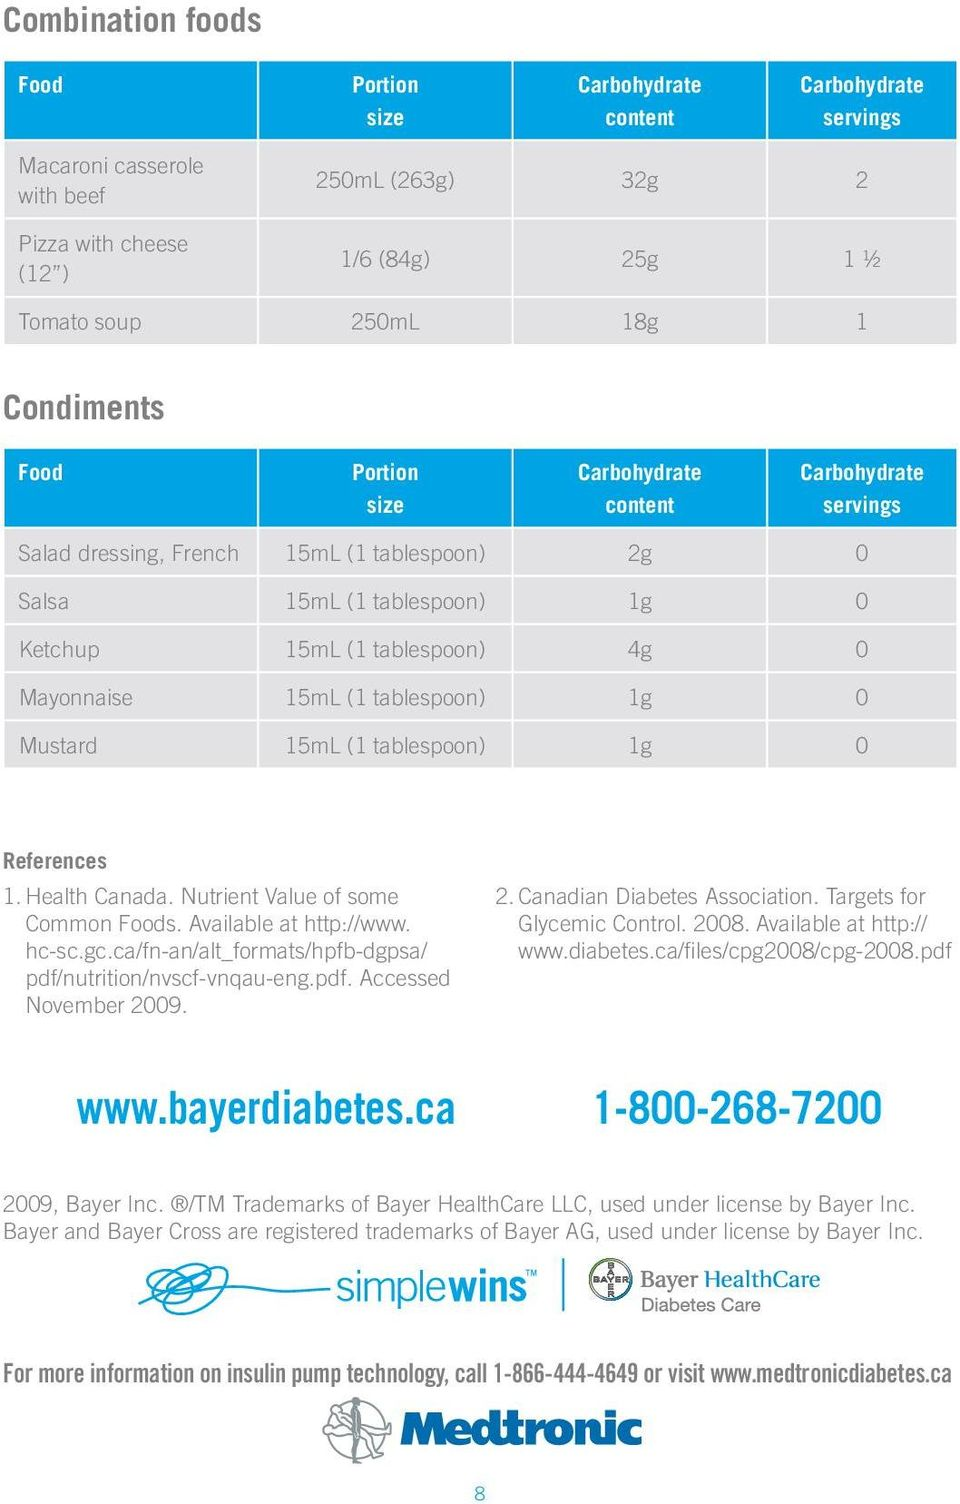 Available at http://www. hc-sc.gc.ca/fn-an/alt_formats/hpfb-dgpsa/ pdf/nutrition/nvscf-vnqau-eng.pdf. Accessed November 2009. 2. Canadian Diabetes Association. Targets for Glycemic Control. 2008.